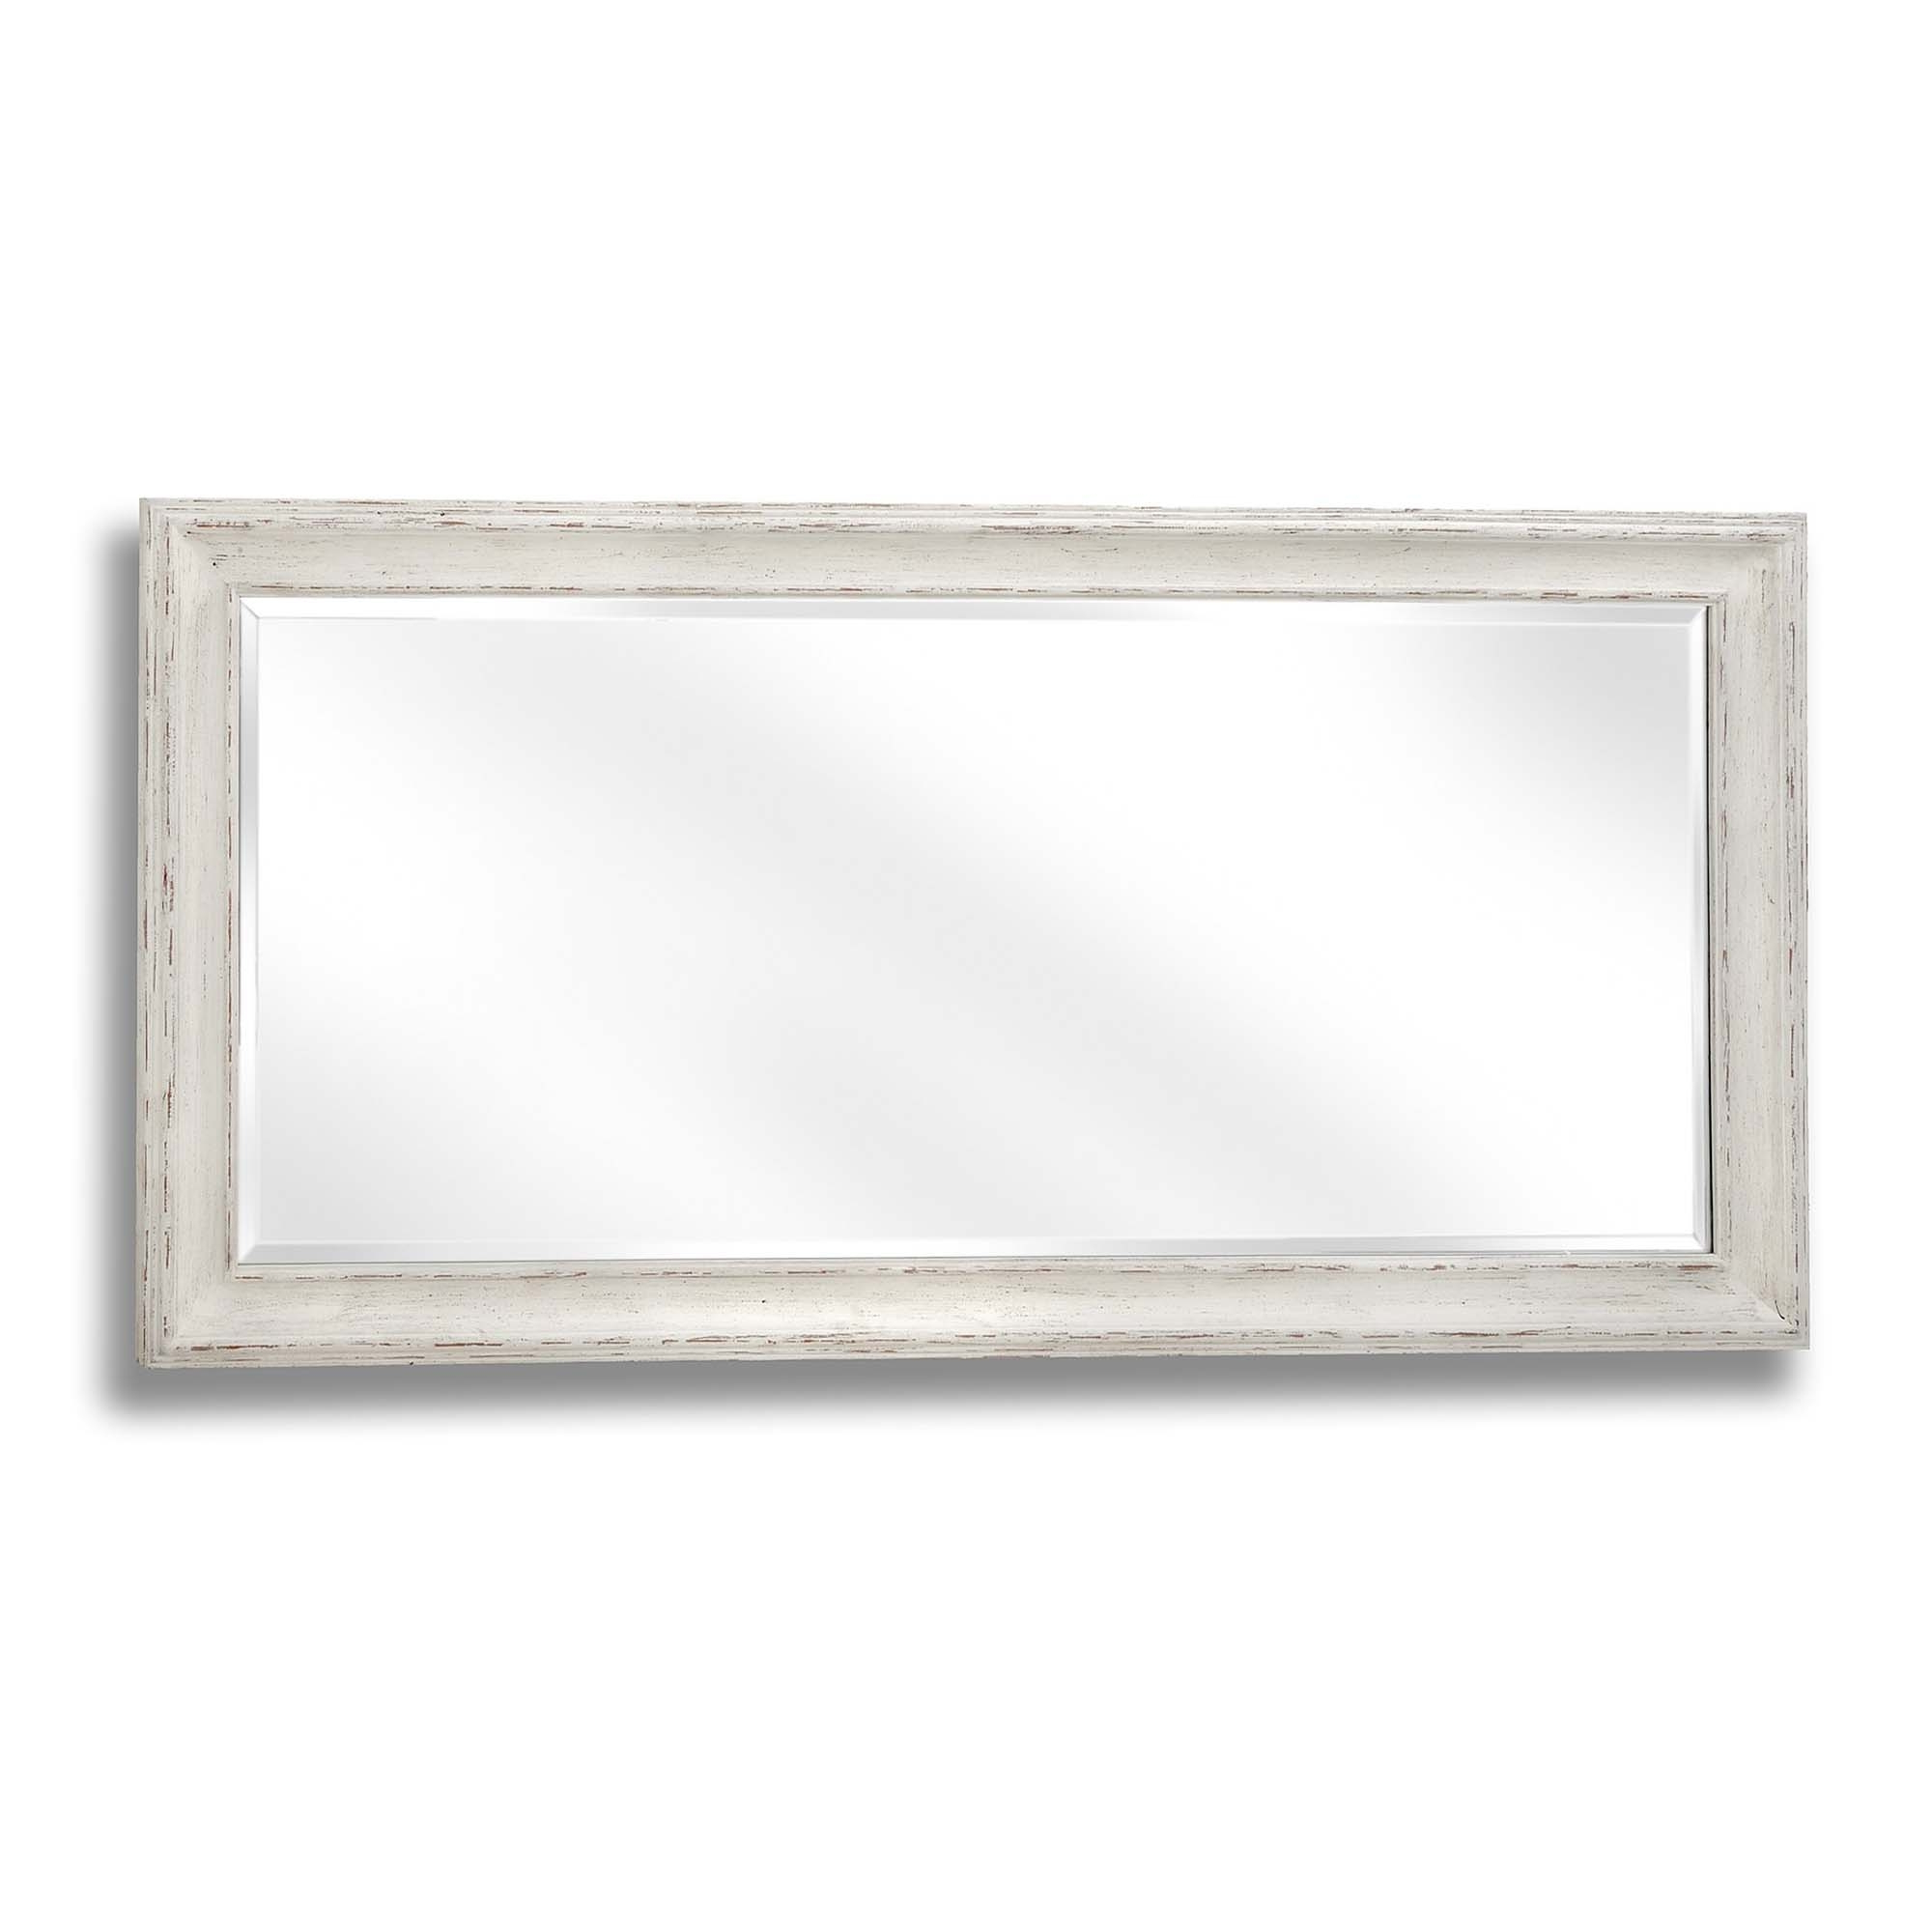 2019 Antique White Large Rectangular Wall Mirror With Antique White Wall Mirrors (Gallery 20 of 20)